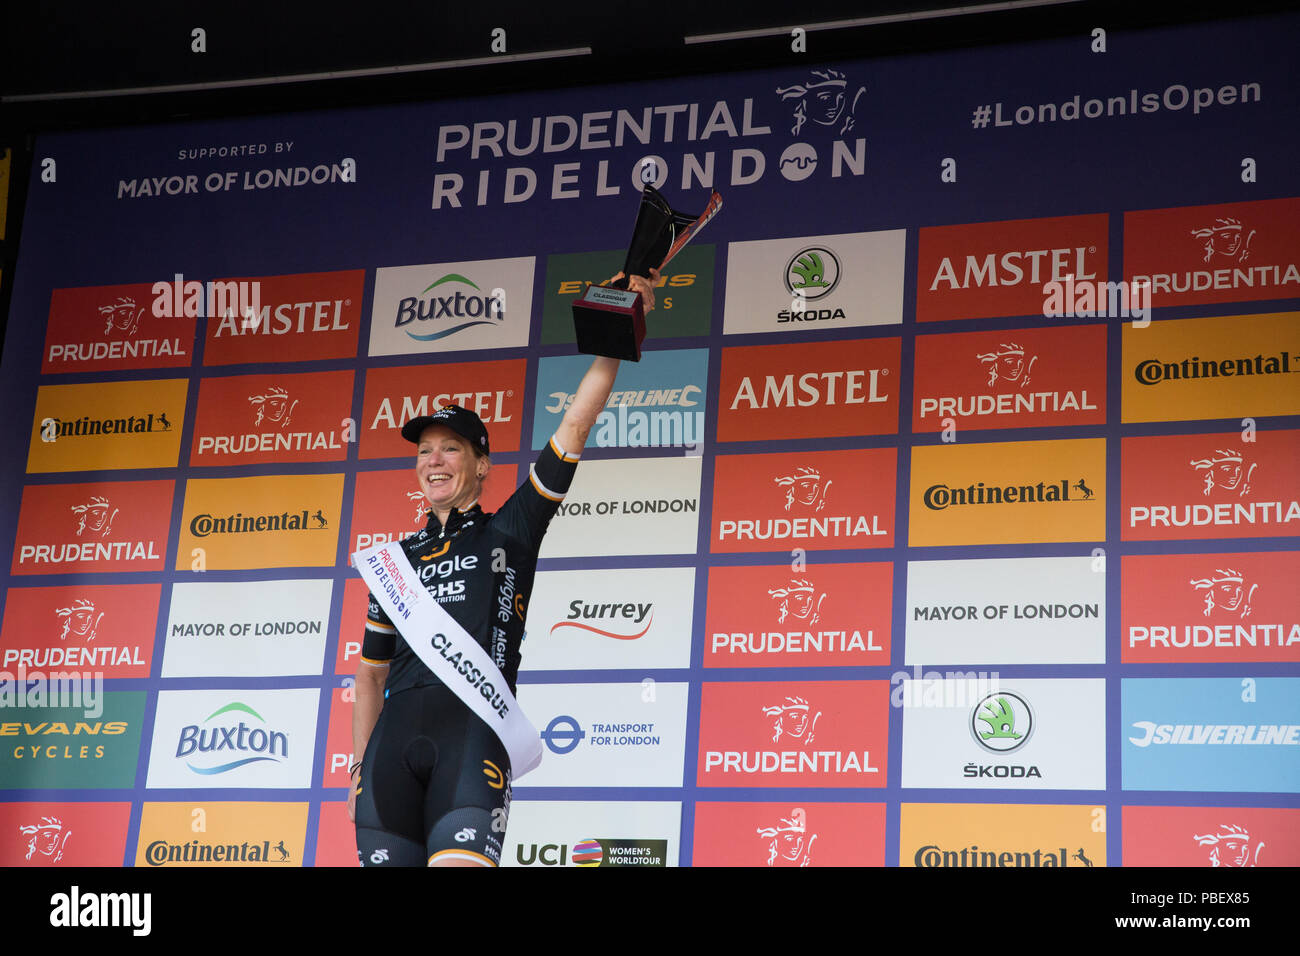 London, UK. 28th July, 2018. Kirsten Wild of the Wiggle High5 team celebrates winning the Prudential RideLondon Classique, the richest women's one-day race in cycling. The race is part of the UCI Women's World Tour and offers spectators the opportunity to see the world's best women's cycling teams battling it out over 12 laps of a closed 5.4km circuit in central London starting and finishing on The Mall. Credit: Mark Kerrison/Alamy Live News Stock Photo